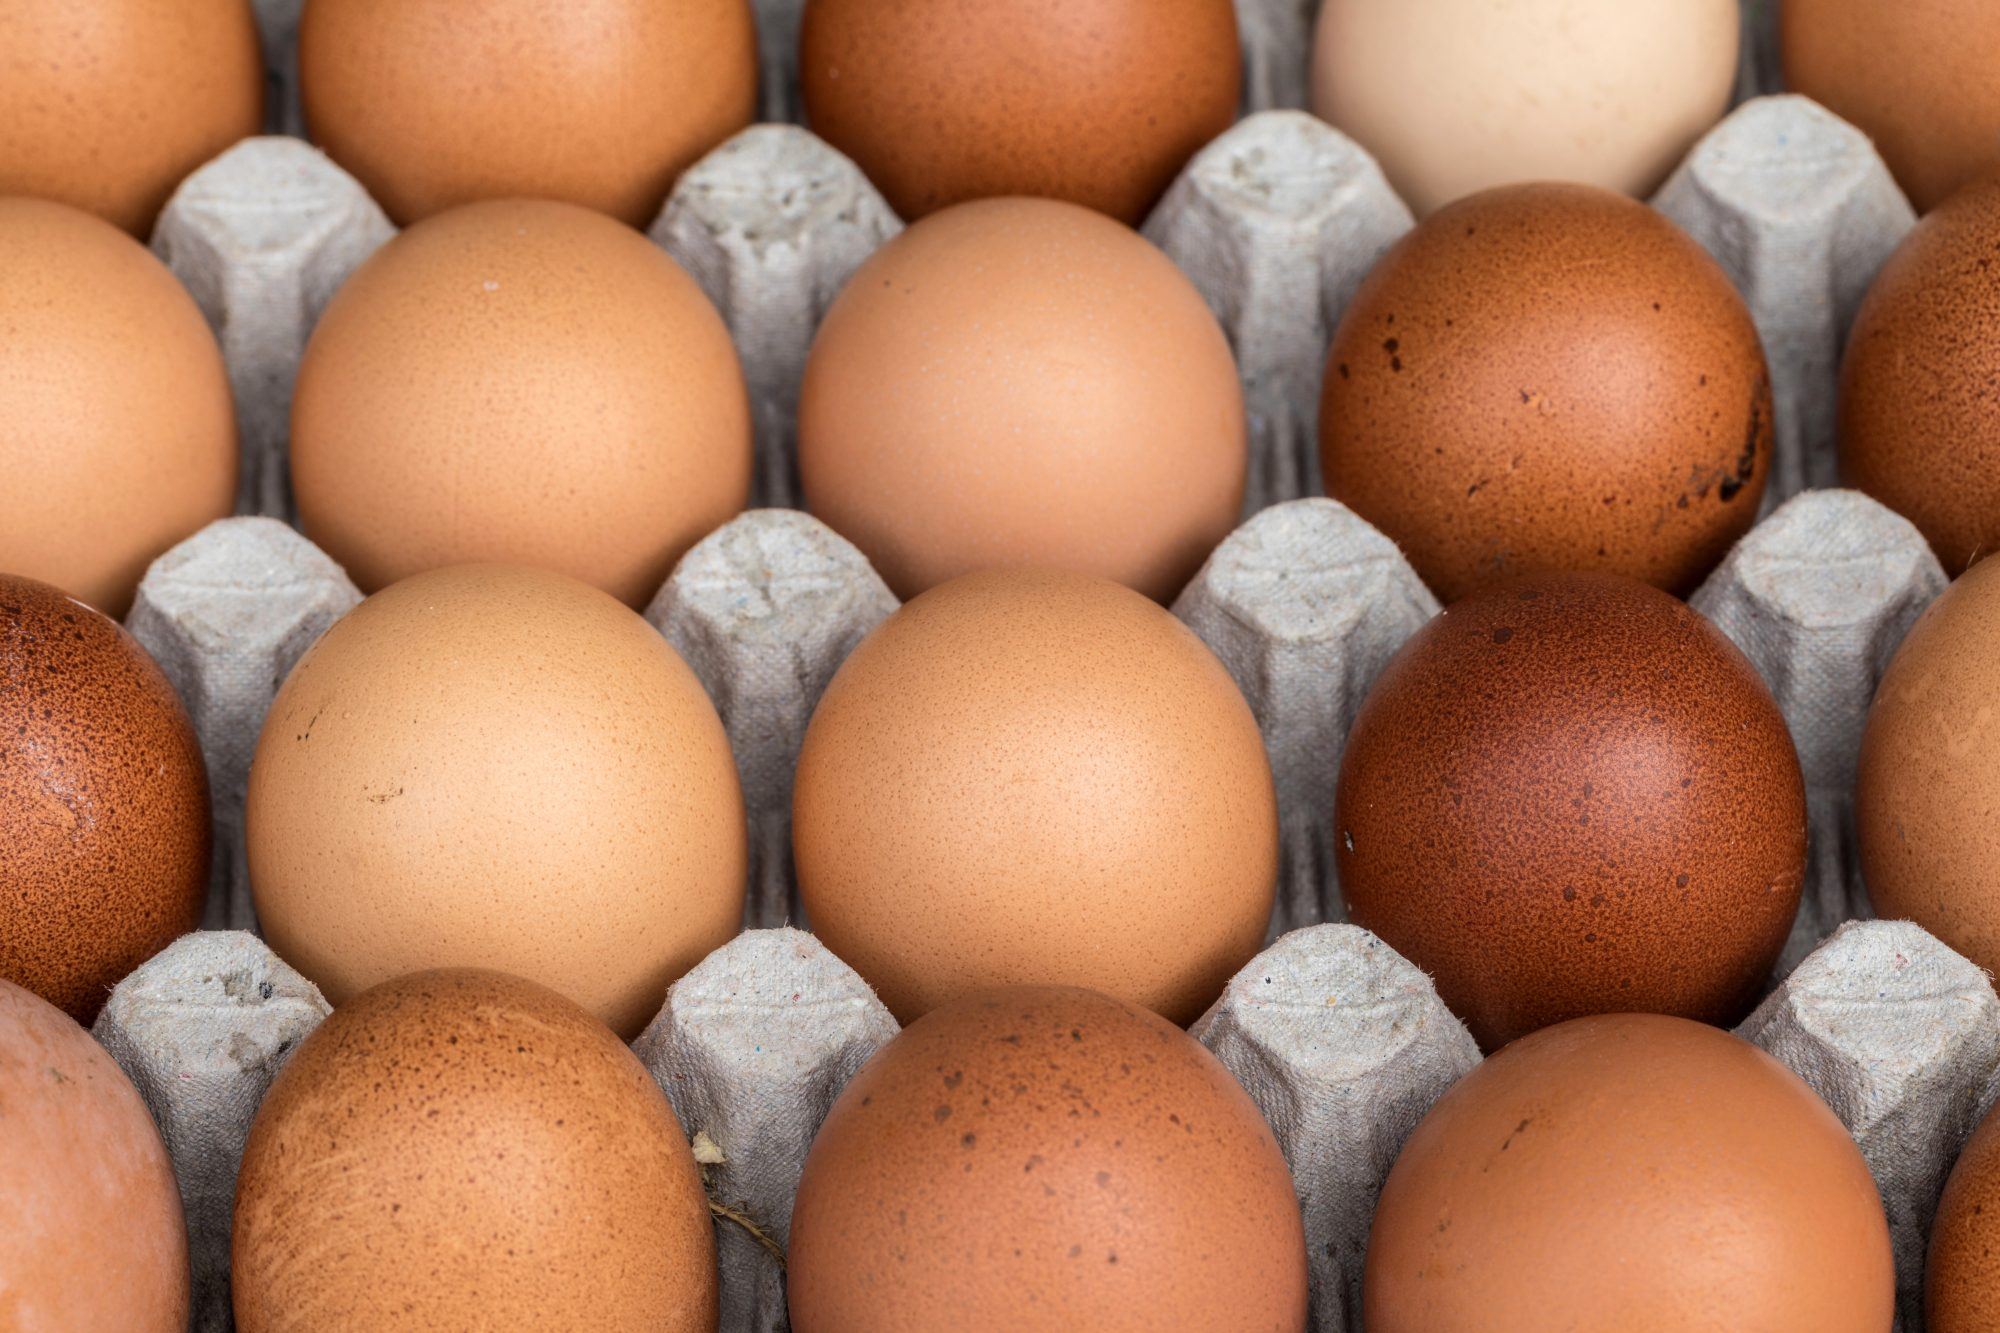 What Do the Different Egg Sizes Mean?